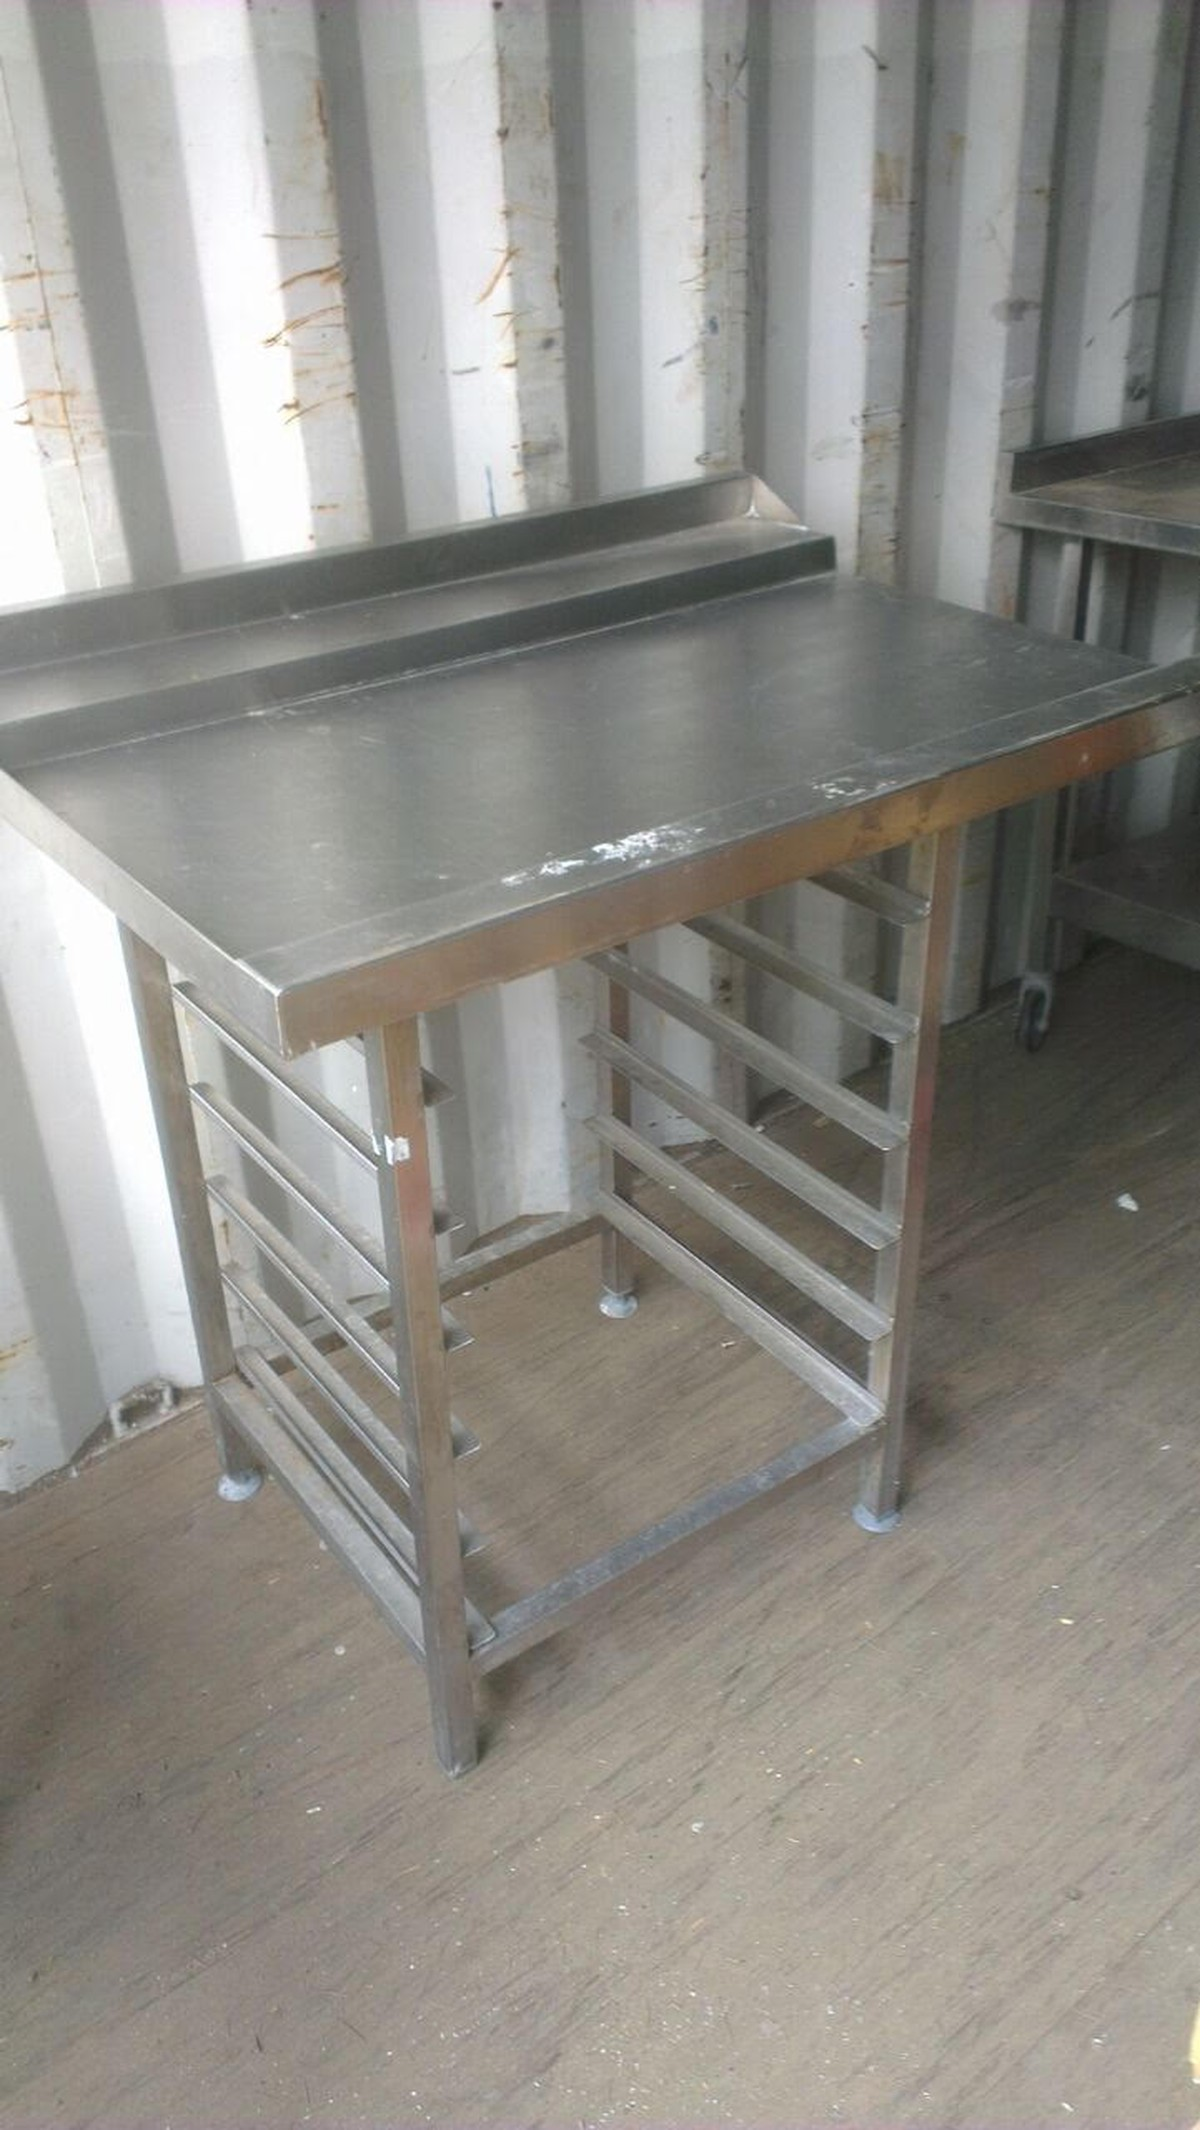 Secondhand Catering Equipment Clearing Trolleys And Tray Racks - Stainless steel dishwasher table